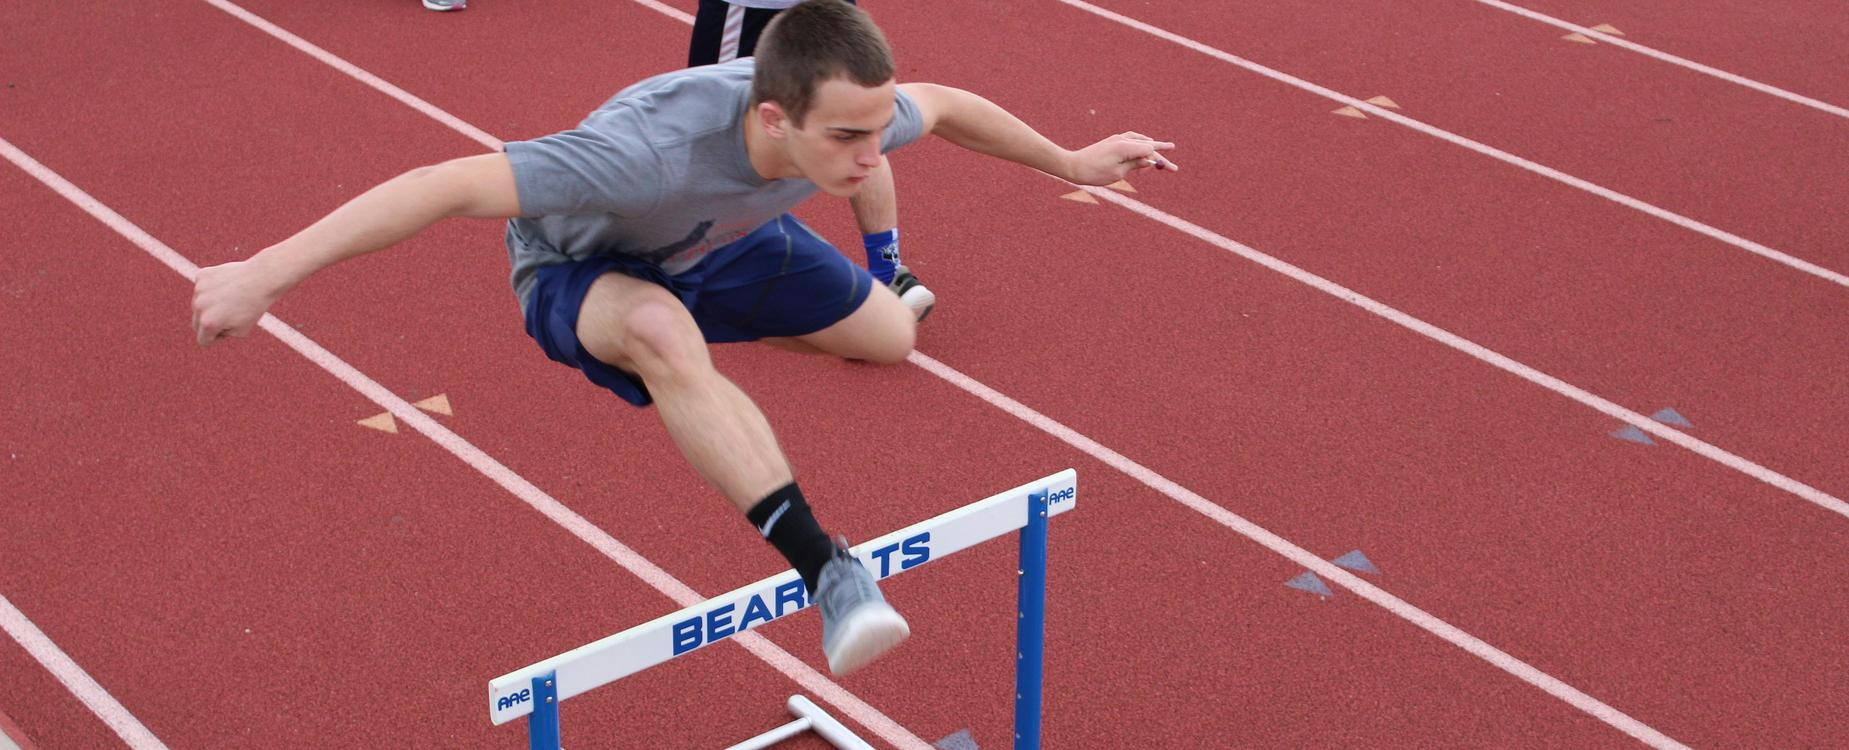 Student jumping hurdles in an event